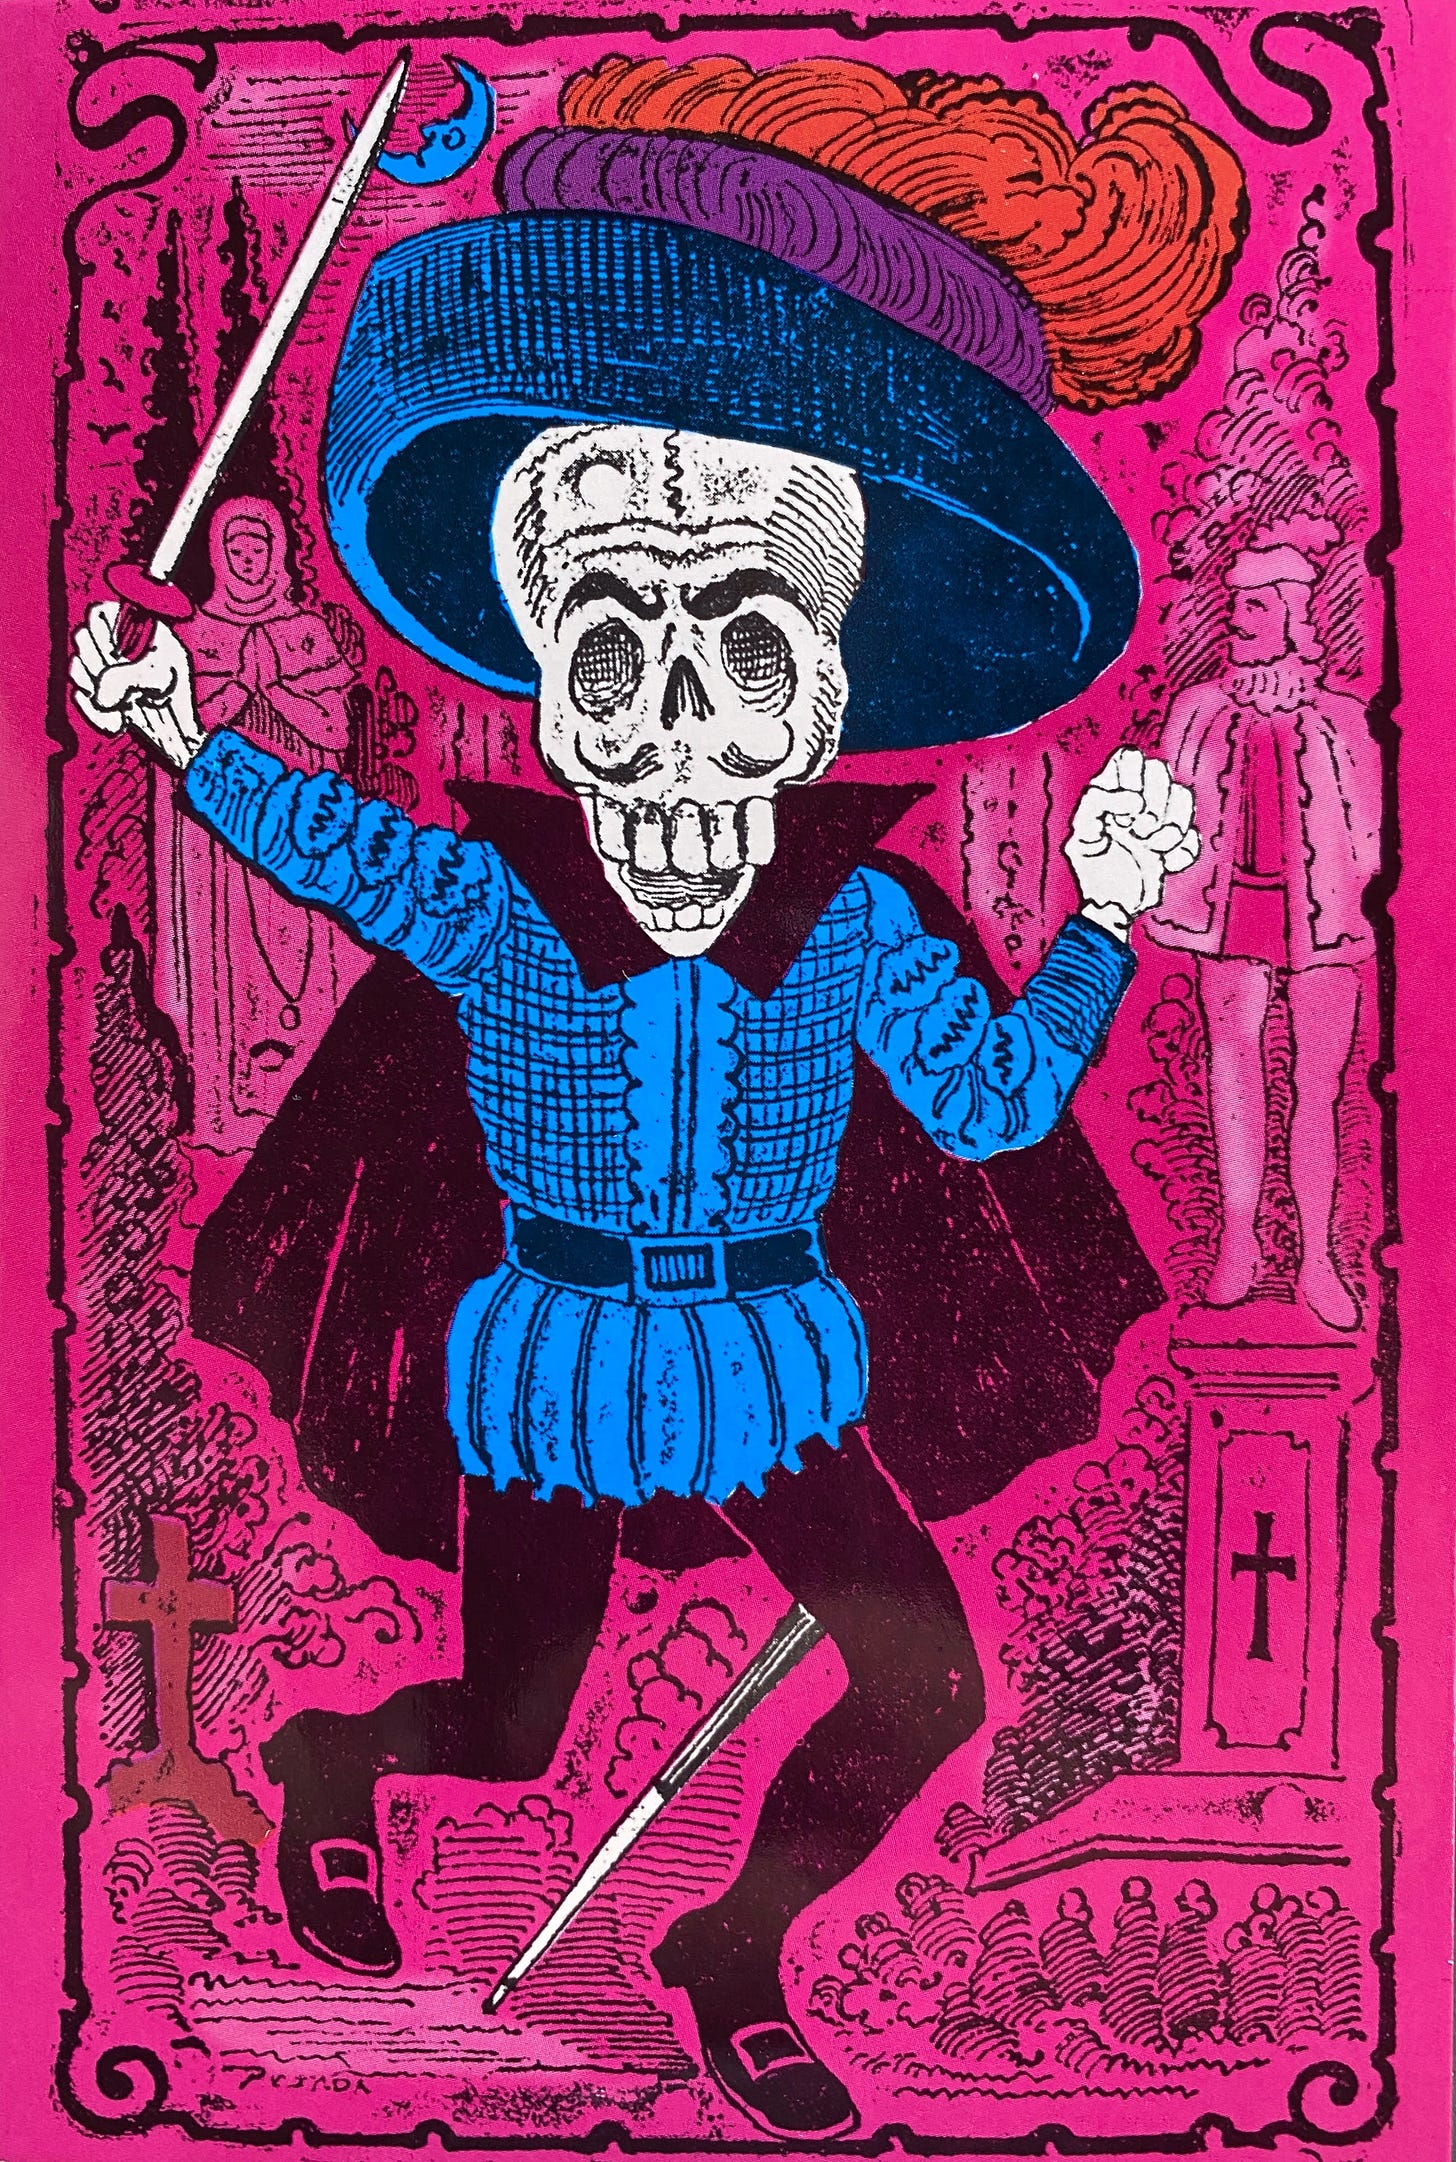 A skeleton dressed in traditional viceroyalty privileged male attire, with their right arm up, brandishing a sword. They wear a wide brimmed hat with plumage on top. On the background, a scene of tombs and statues, memorializing the departed.